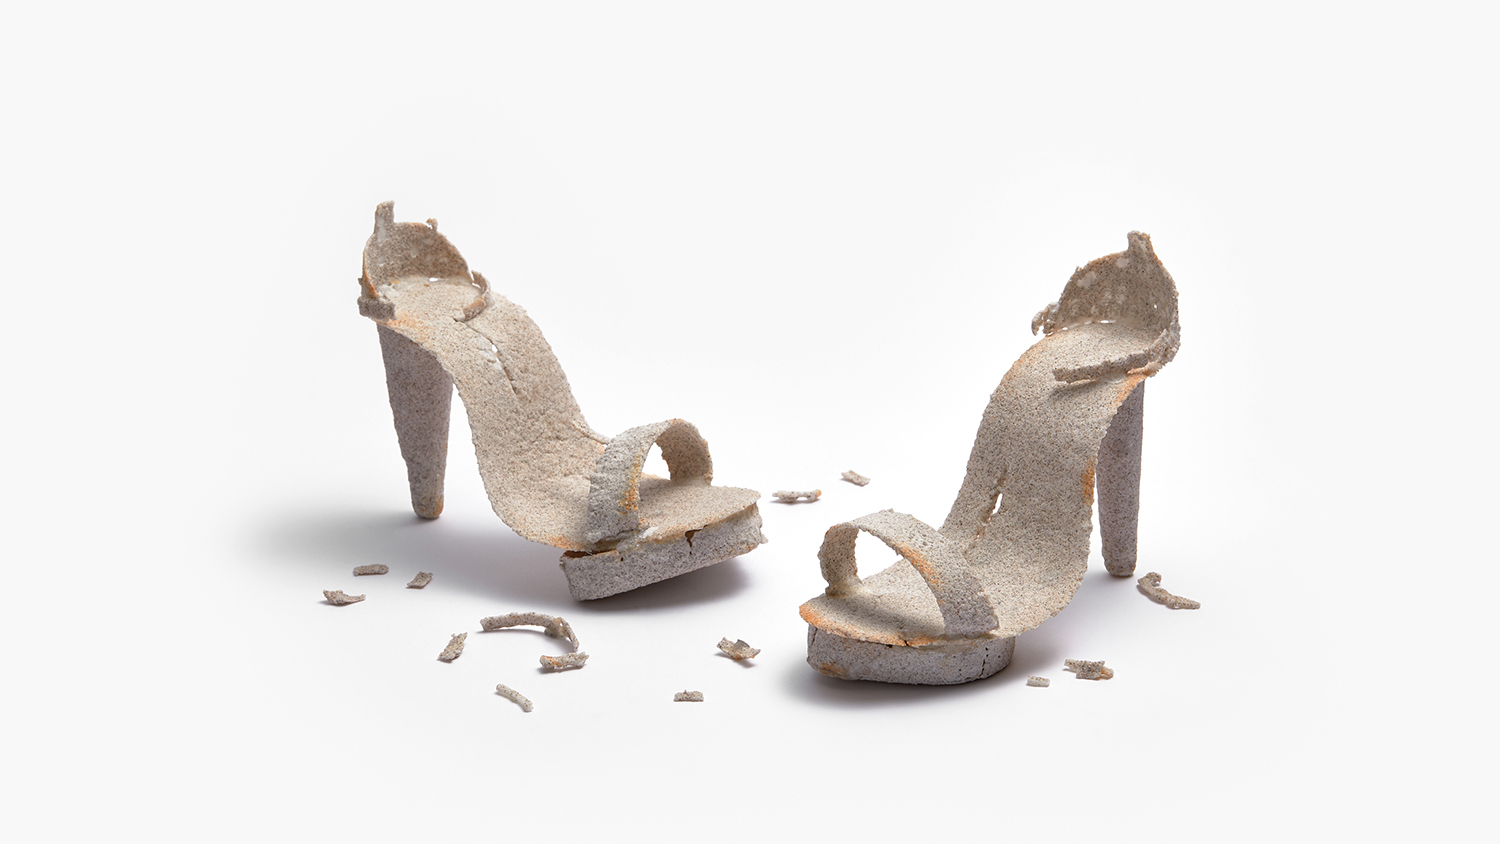 A pair of glass heels.